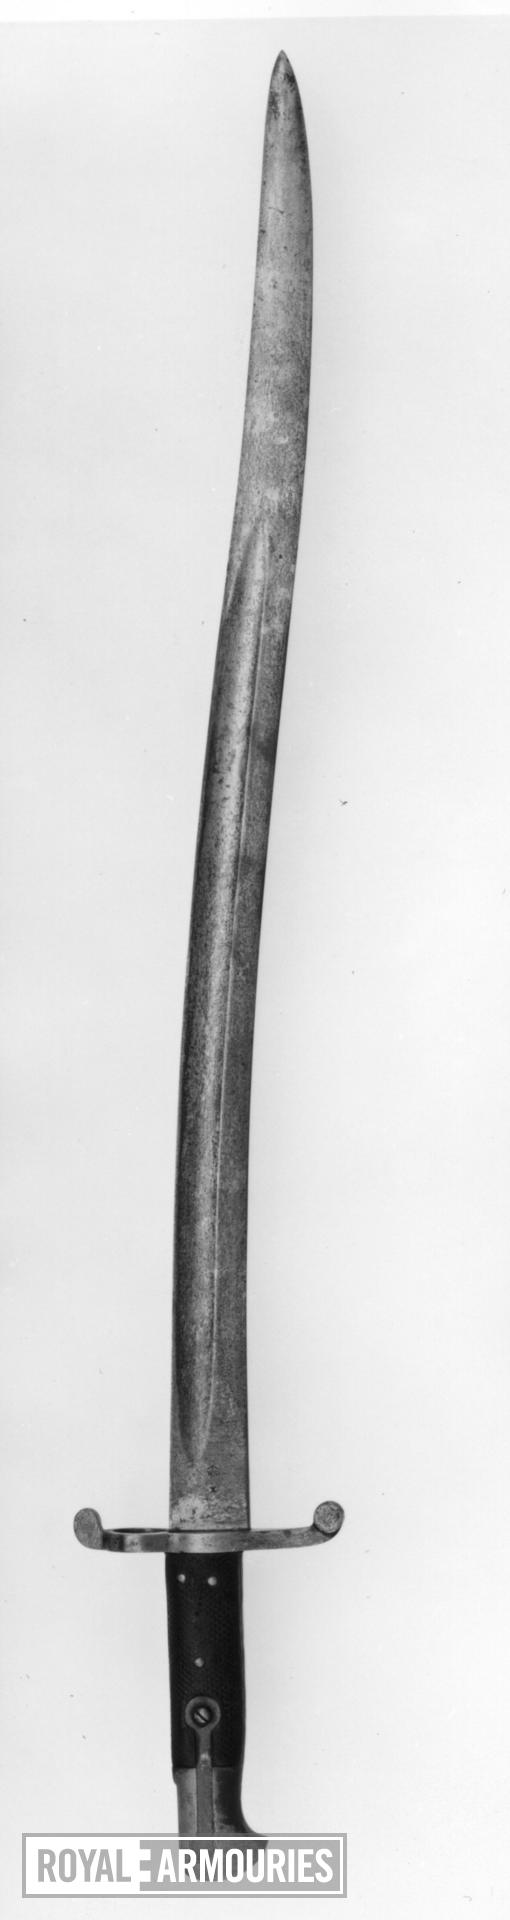 Bayonet Sword bayonet for Snider rifle